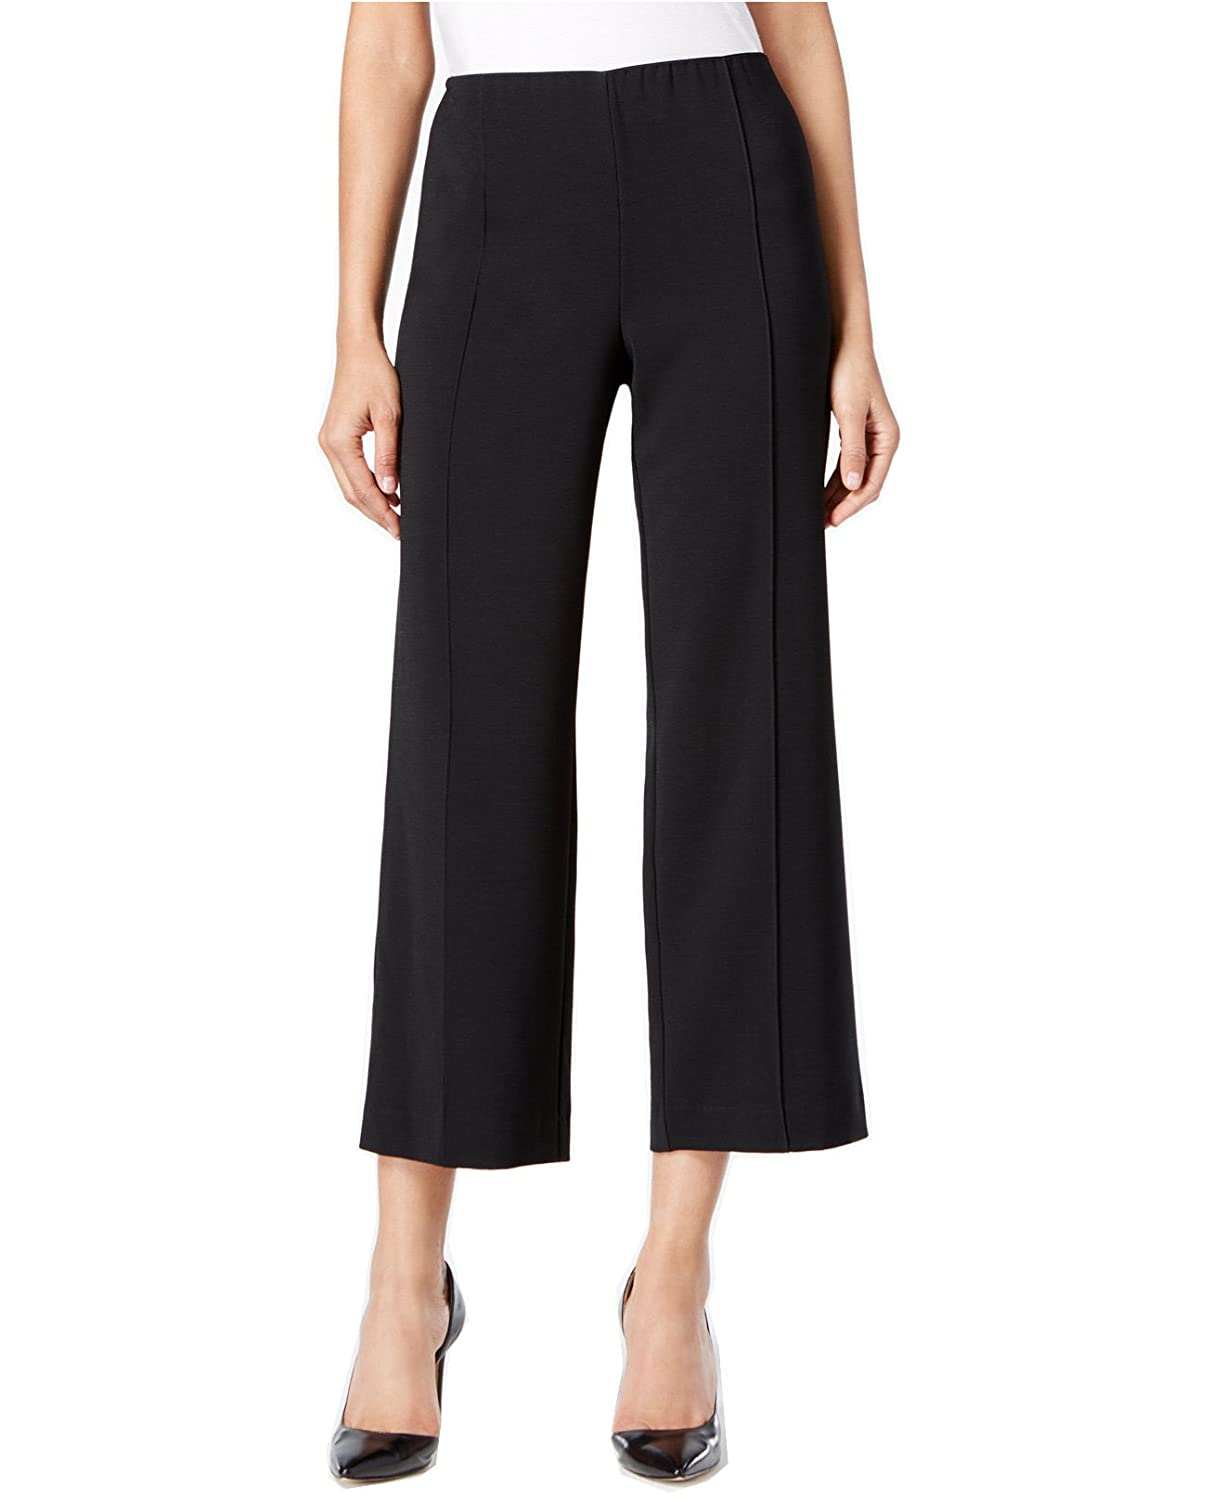 Alfani Women's Pull-On Culottes